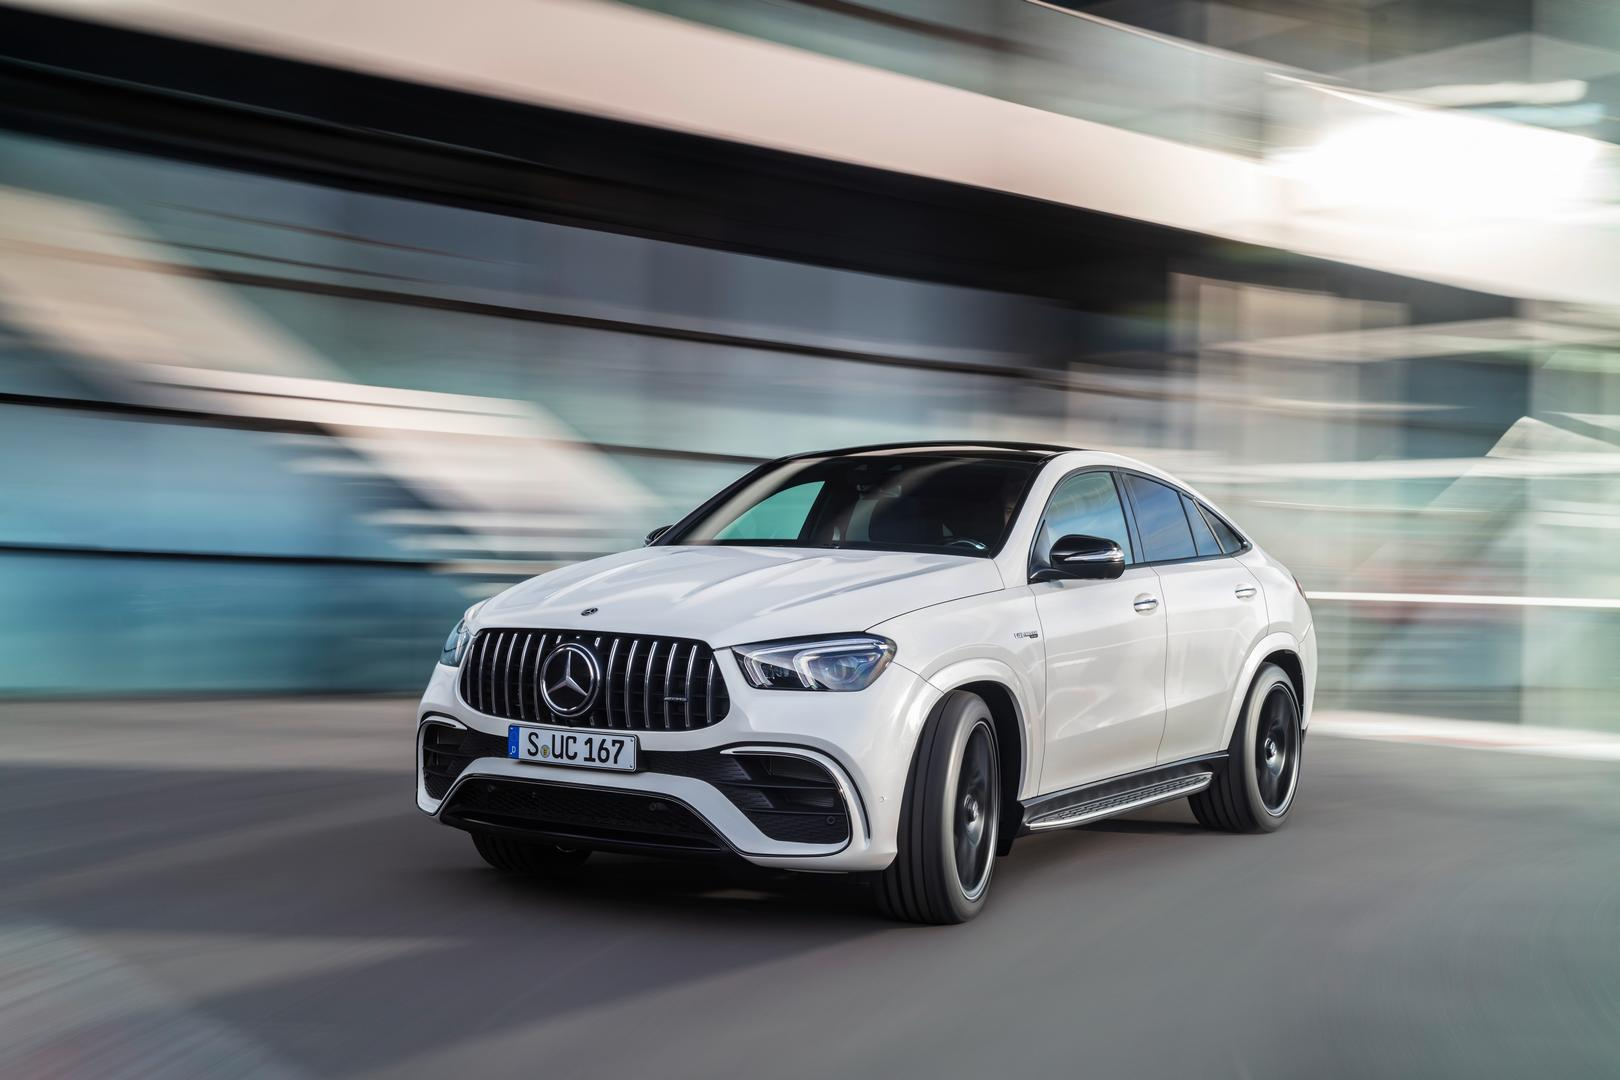 2021 Mercedes-AMG GLE 63 S Coupe White